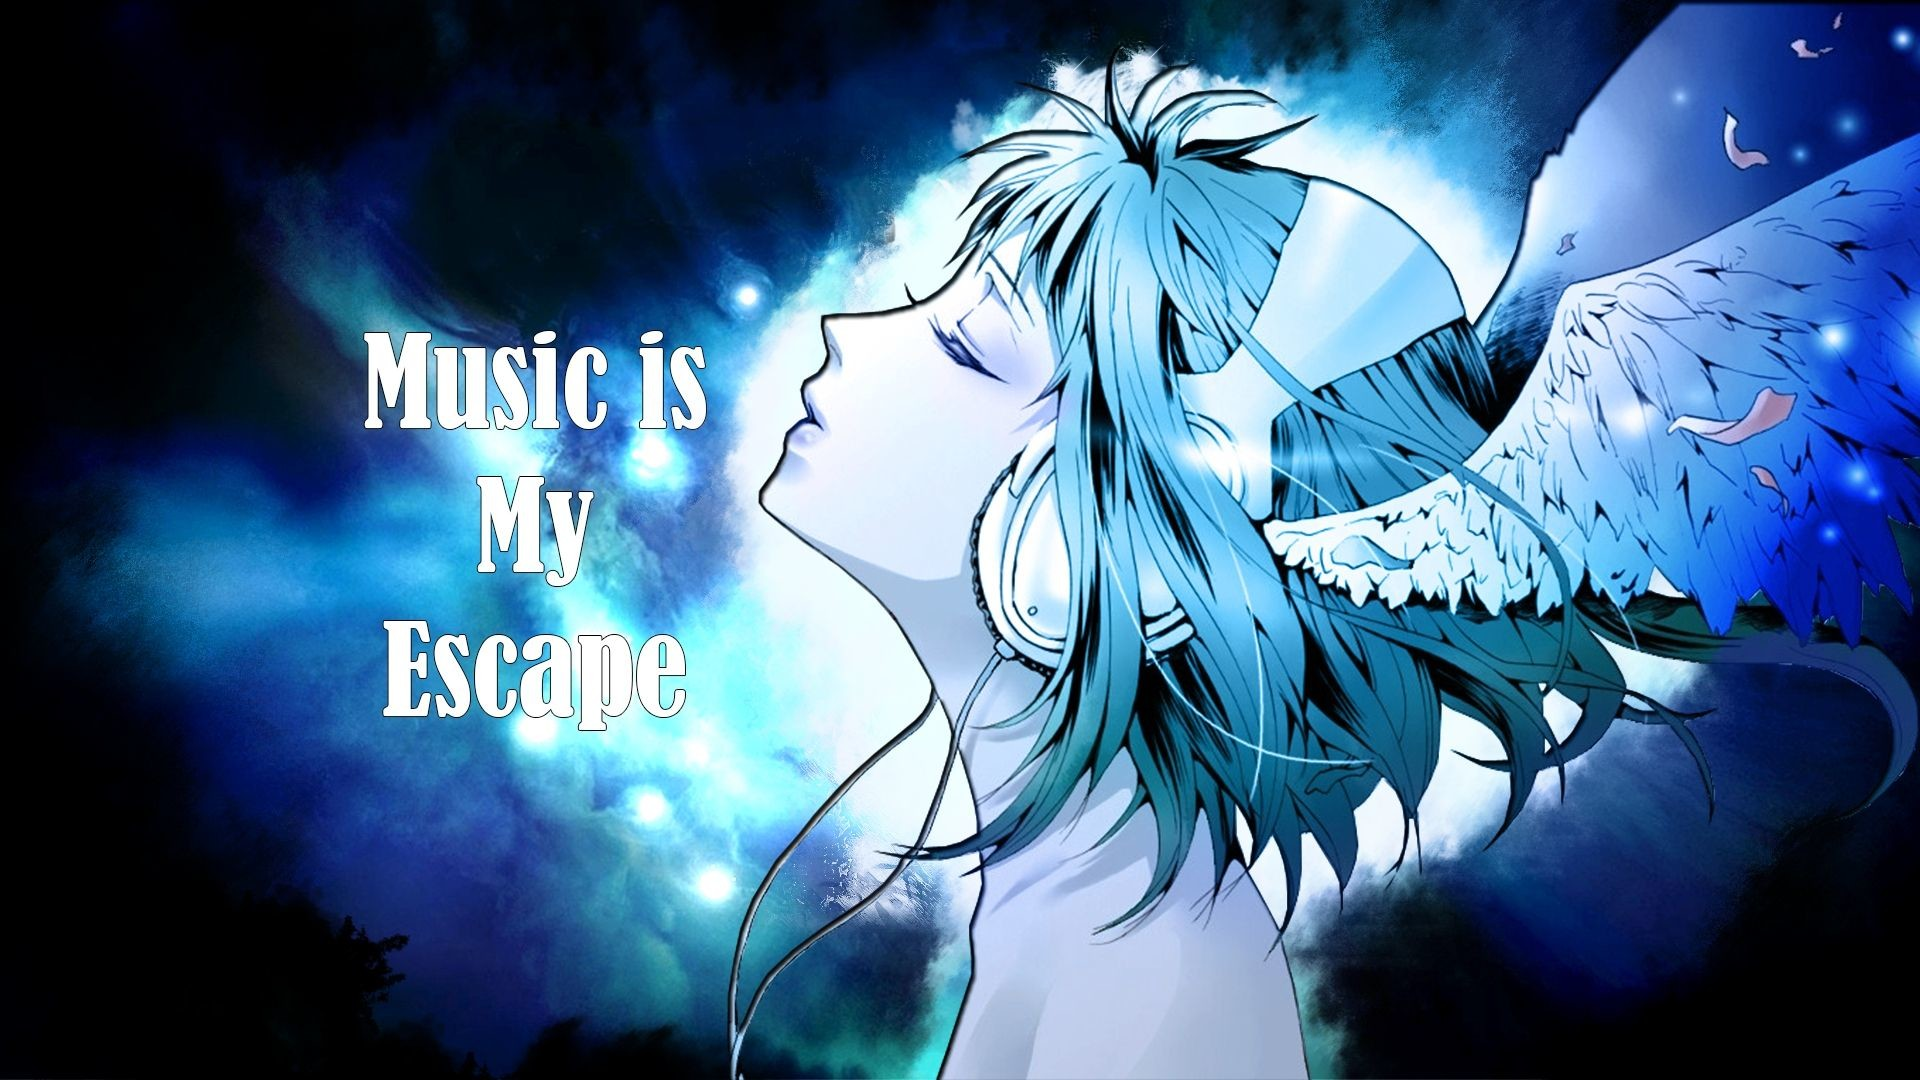 Res: 1920x1080, Music Is My Escape Hd Desktop Background Wallpapers Free px